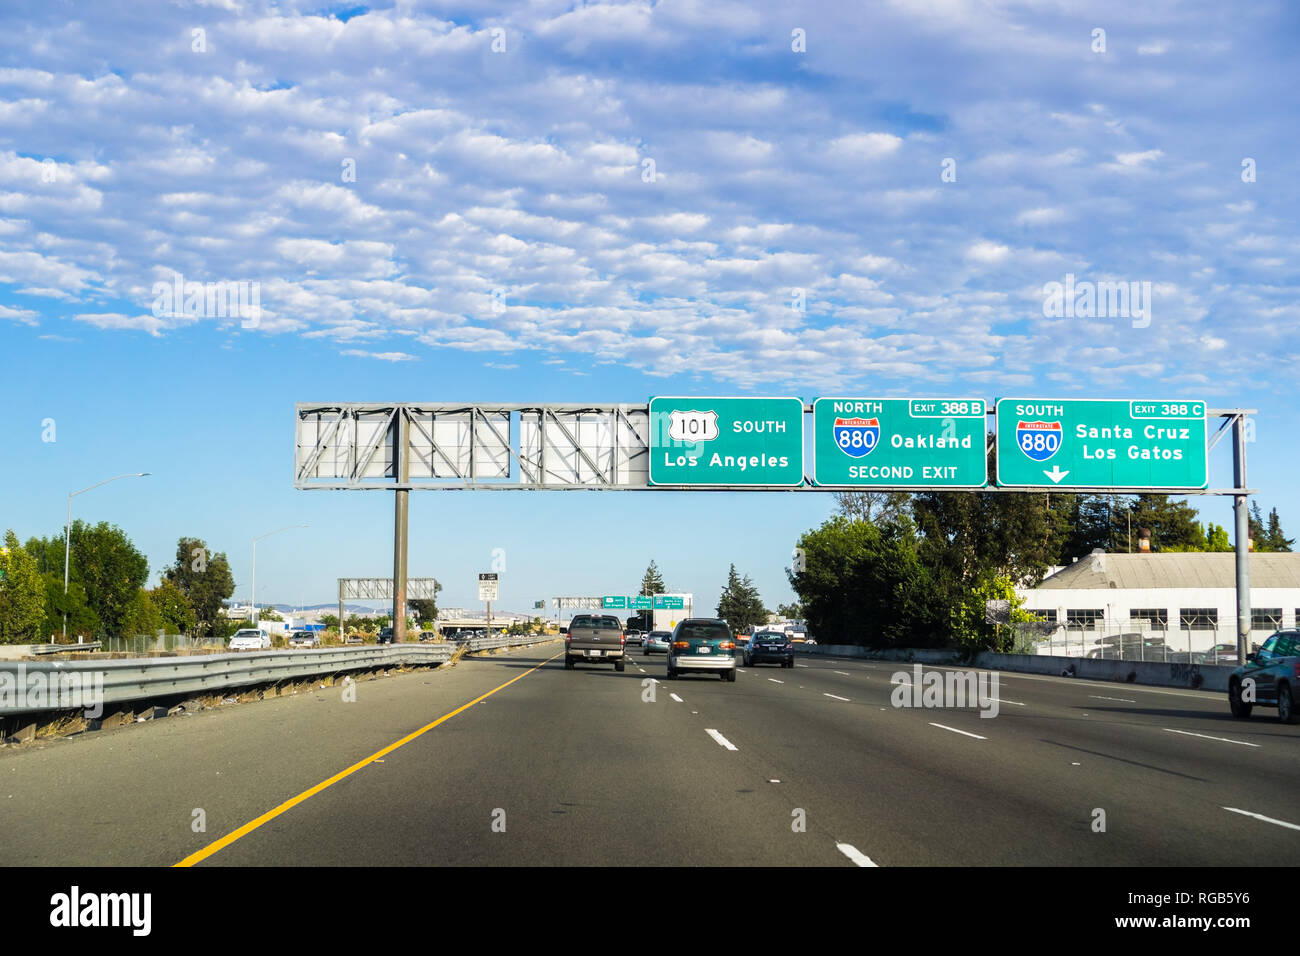 Interstate 880 Stock Photos & Interstate 880 Stock Images